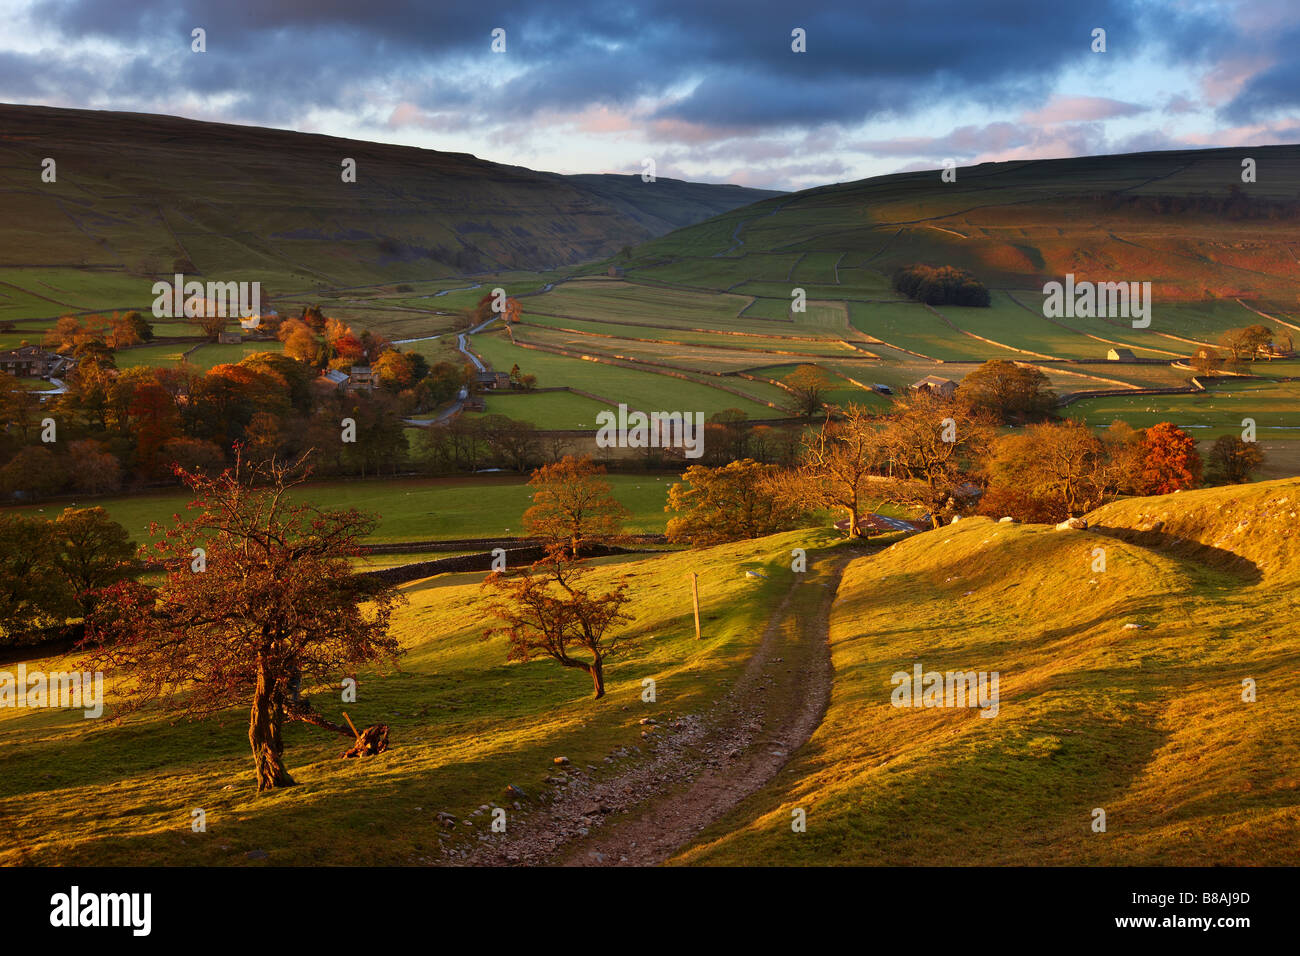 first light on the autumn colours at Arncliffe in Littondale, Yorkshire Dales National Park, England, UK - Stock Image